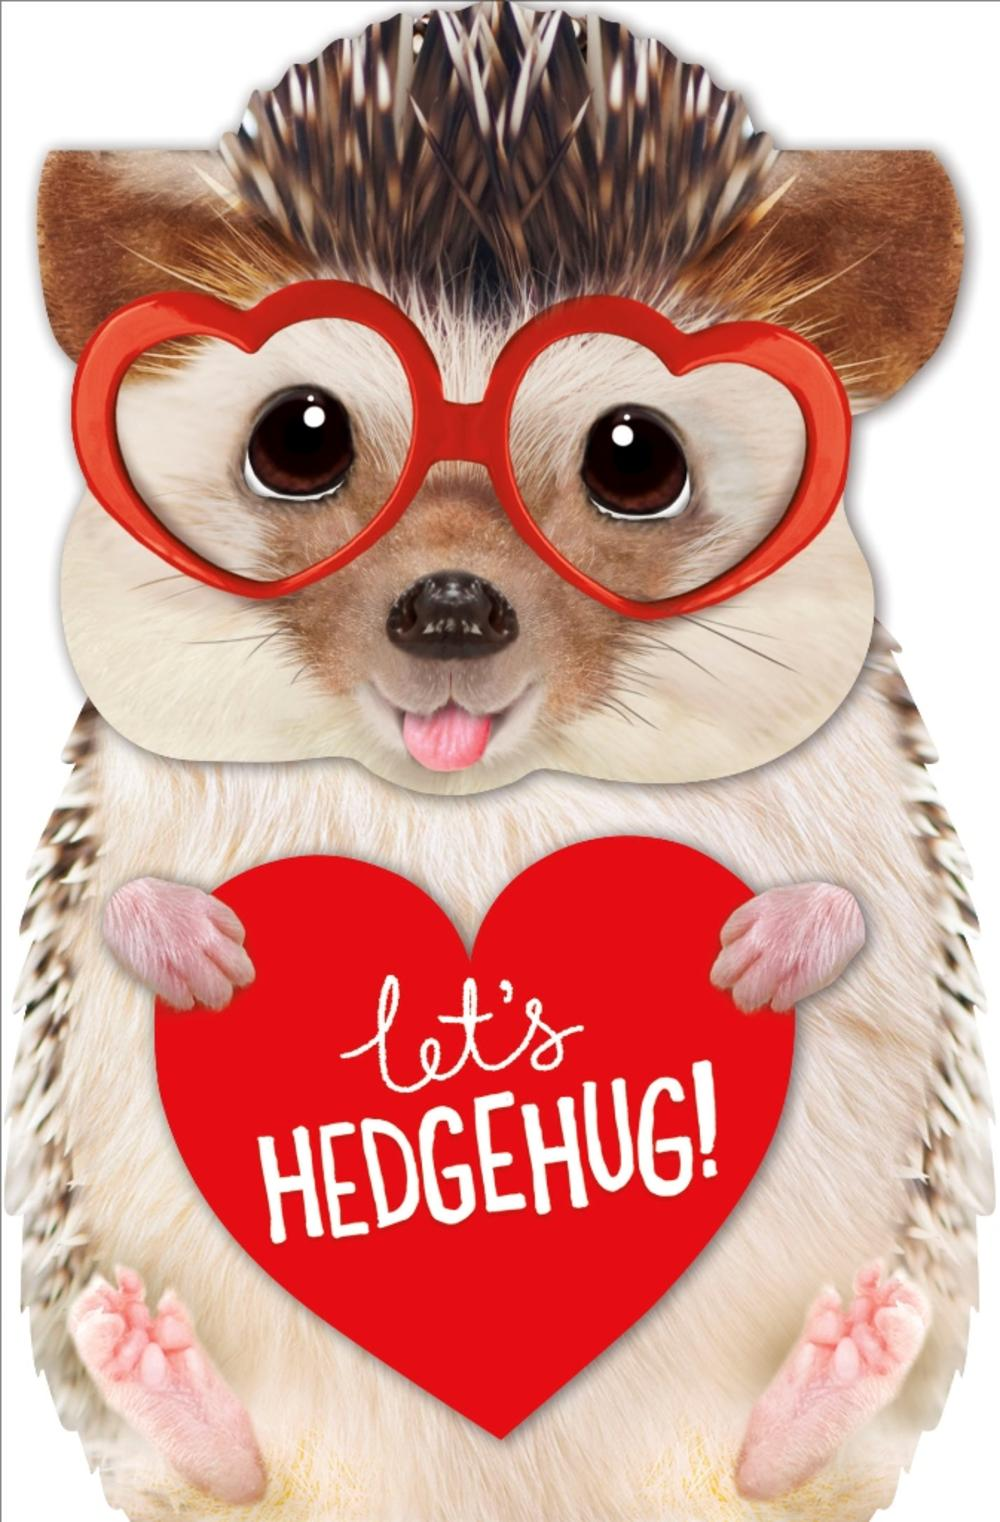 Let's Hedgehug 3D Hedgehog Valentine's Day Greeting Card